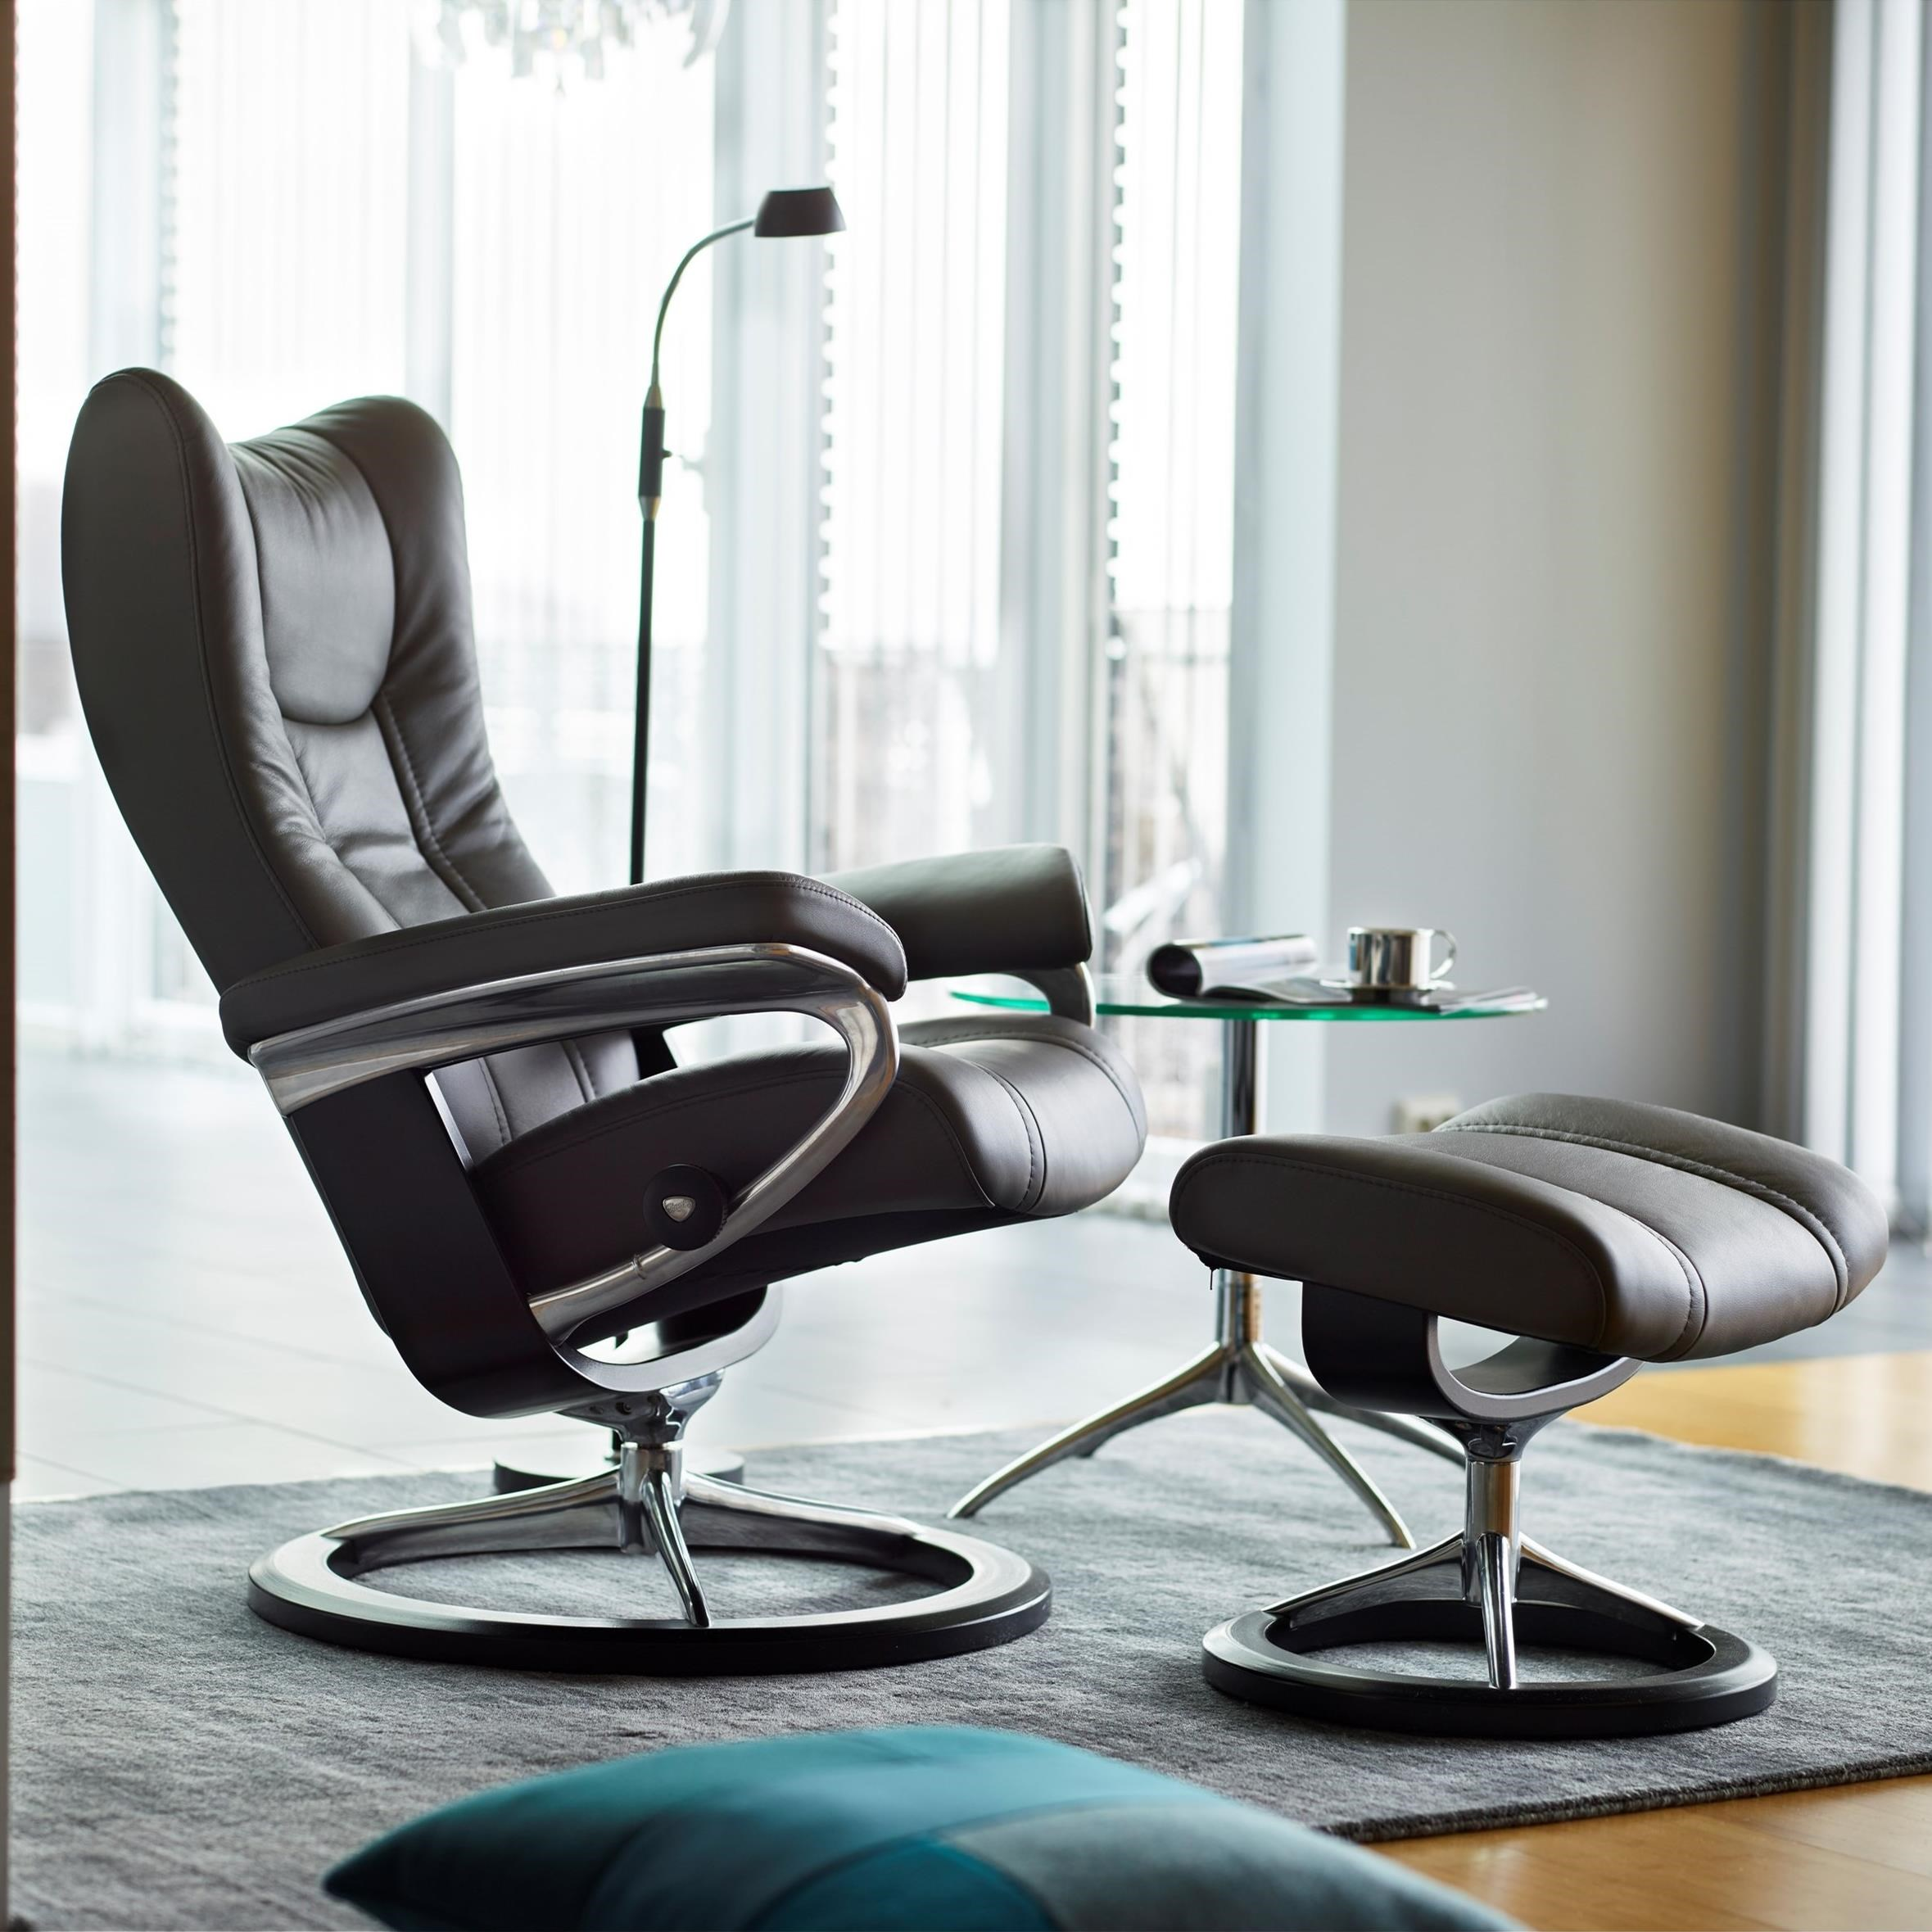 Wing Medium Chair & Ottoman with Signature Base by Stressless at Bennett's Furniture and Mattresses